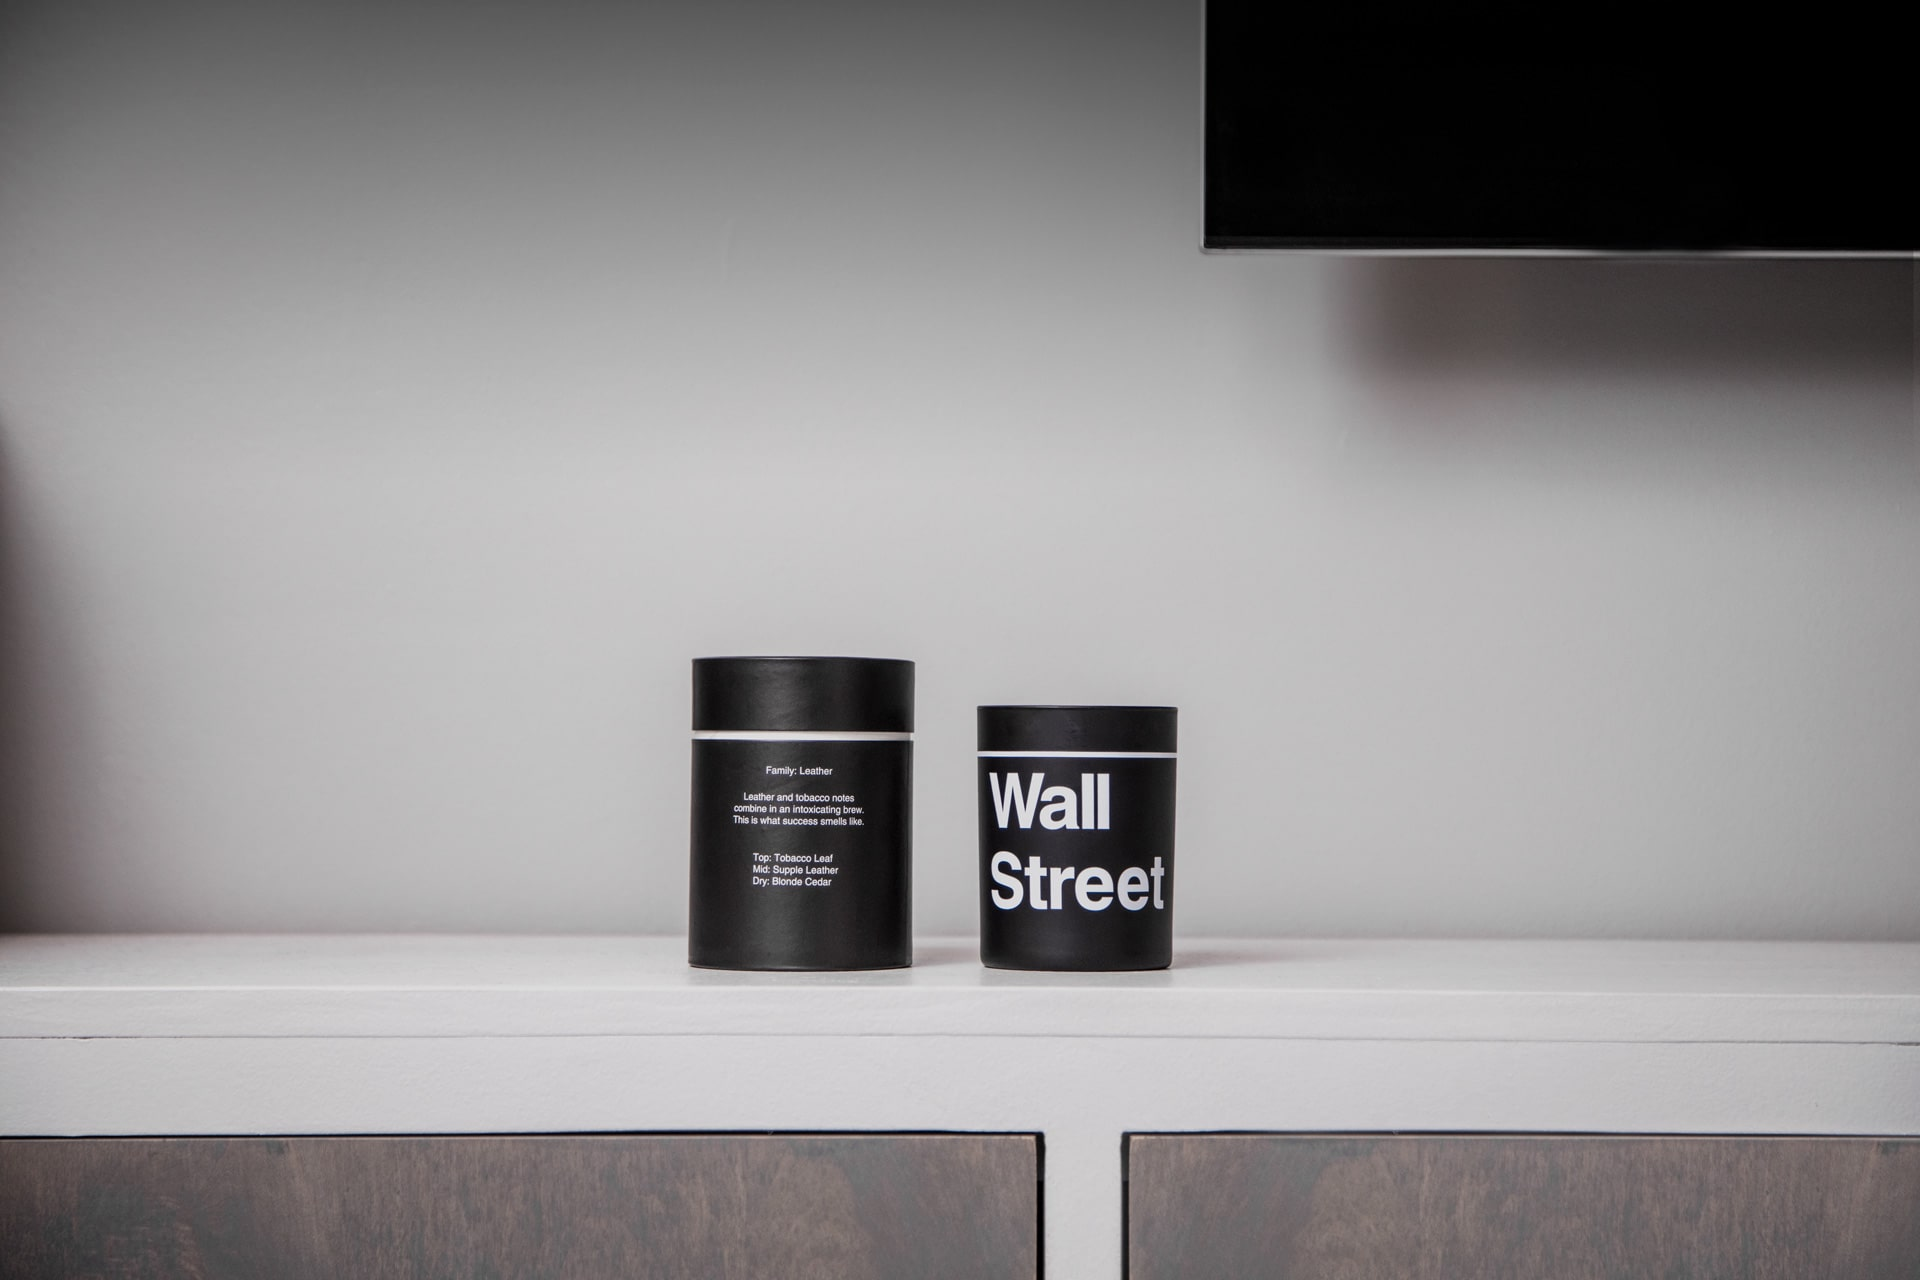 Wall Street Candle